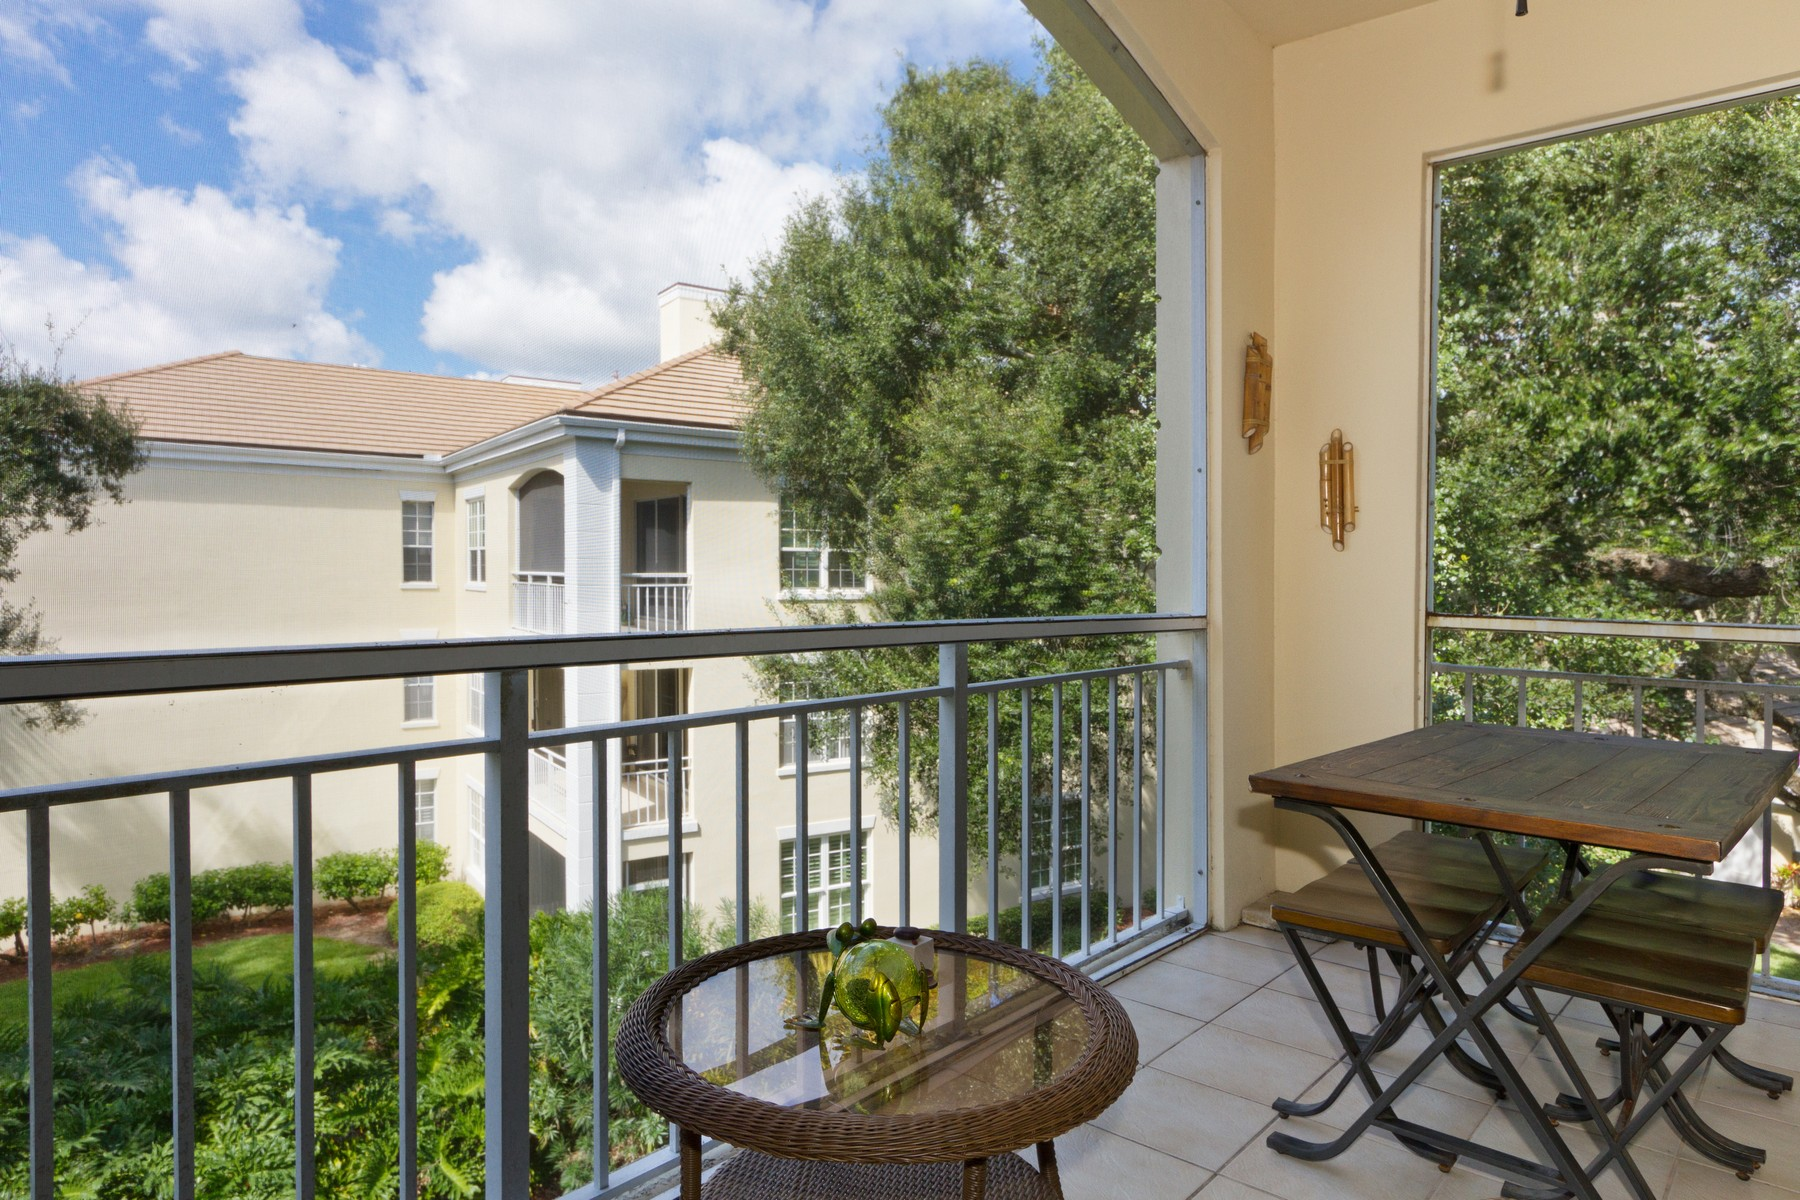 Additional photo for property listing at Penthouse Unit with Peaceful Lake Views 200 Sable Oaks Lane #304 Indian River Shores, Florida 32963 United States